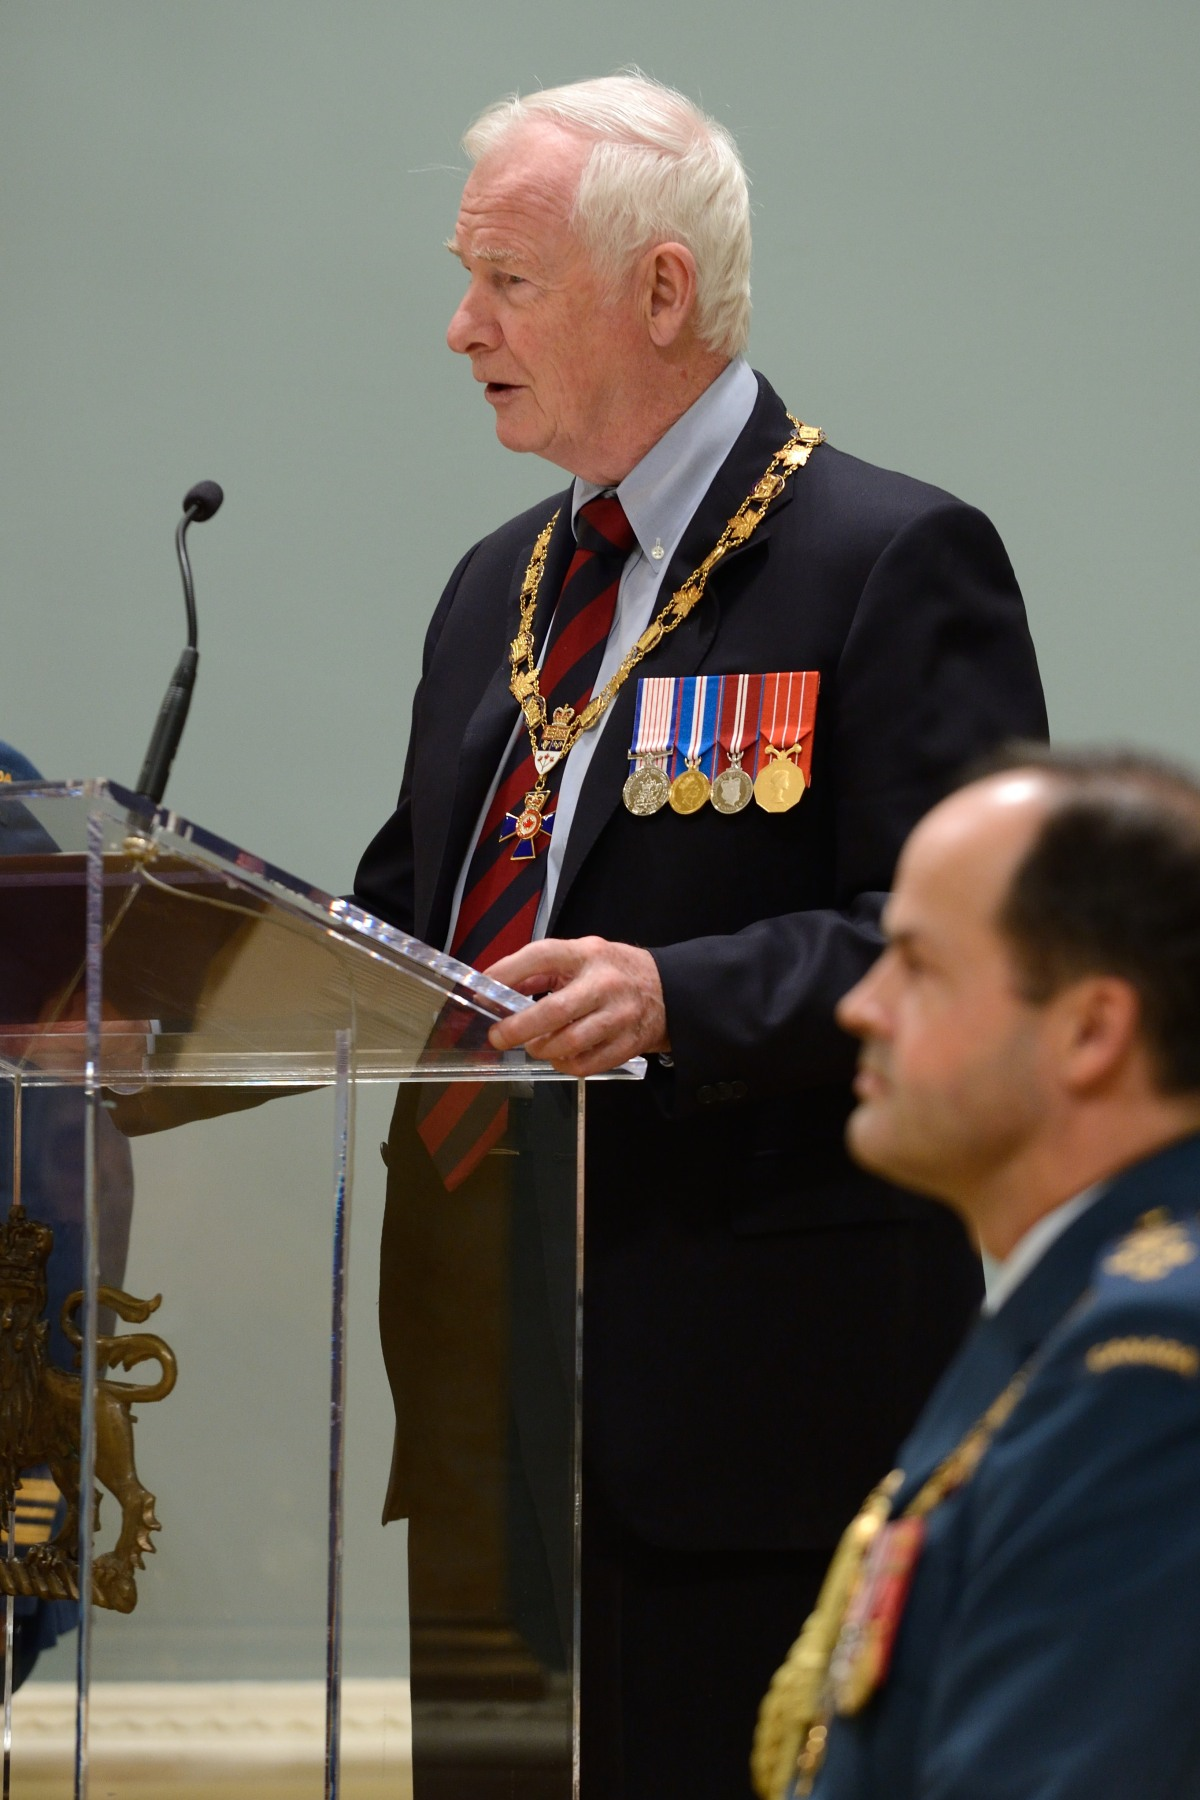 """Duty with honour. In that short phrase lies the great promise of the Canadian Forces to contribute to a more peaceful, secure and just world,"" said His Excellency. ""As members of the Order of Military Merit, you understand your role in helping others and in defending Canada's democratic values."""